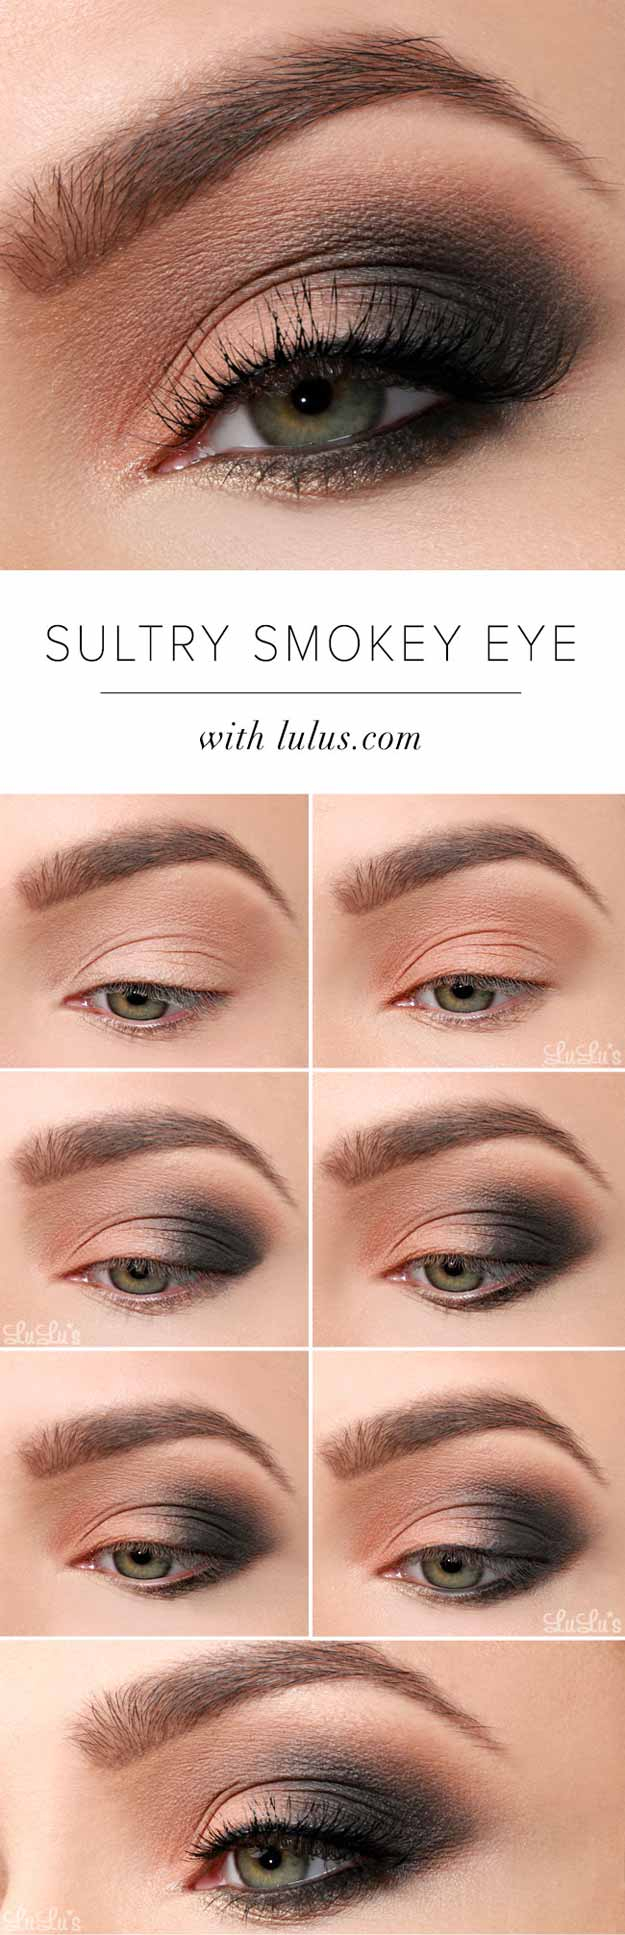 Makeup For Red Hair And Brown Eyes 35 Wedding Makeup For Blue Eyes The Goddess